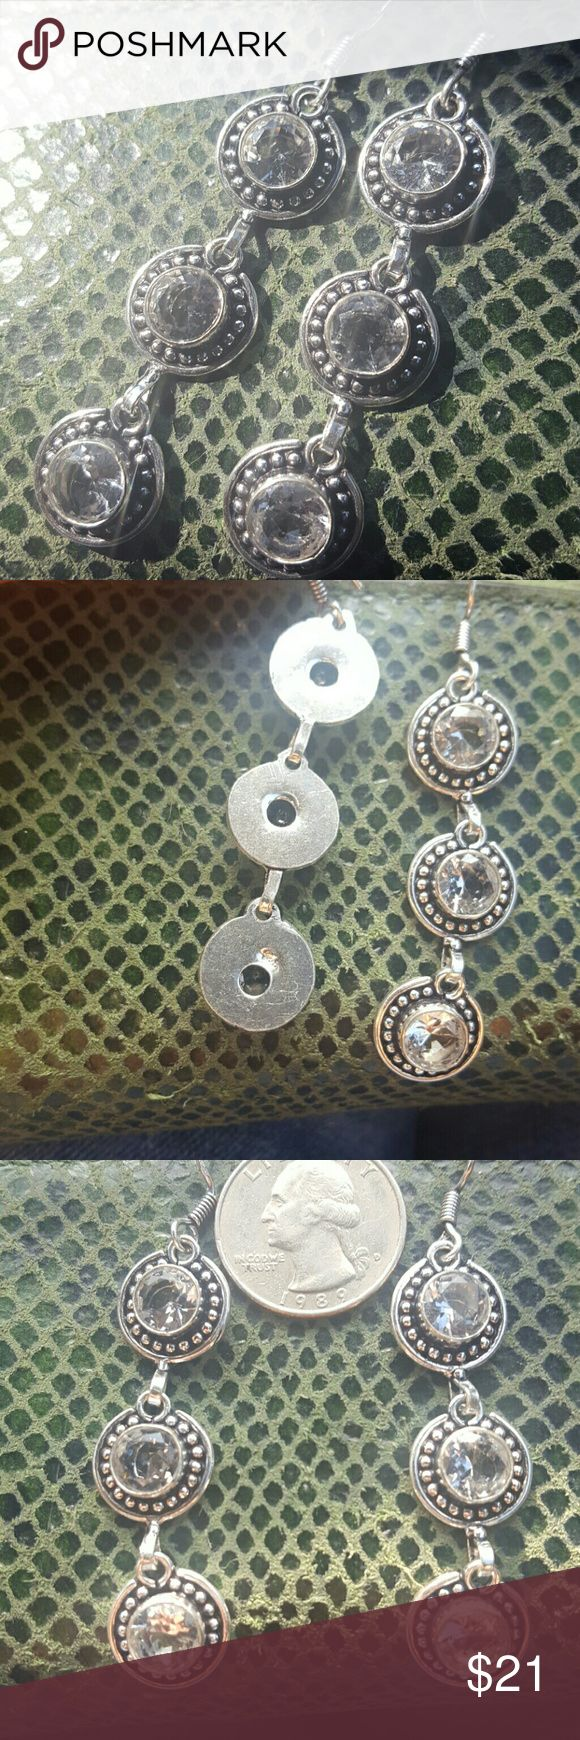 """White Topaz Earrings NWOT white Topaz Earrings earrings. Mixed silver metal. Measures 3""""  Beautiful set.  E2A  🛇No Holds🛇No Trades🛇No PayPal🛇Modeling 💰Bundle to save on shipping 🔵Use blue offer button to negotiate  📫Same or next business day shipping 💯Authentic items 😀Ask questions if the details don't explain everything.   I want you to be happy with your purchase. unbranded Jewelry Earrings"""